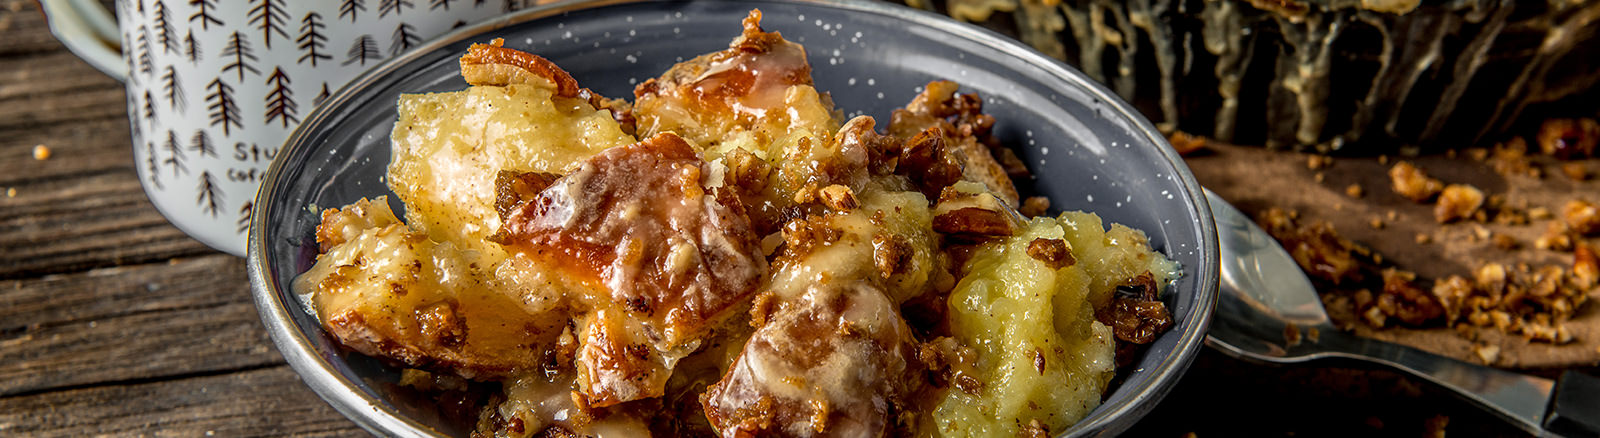 Traeger Recipe - Bread Pudding Traeger Wood Pellet Grills